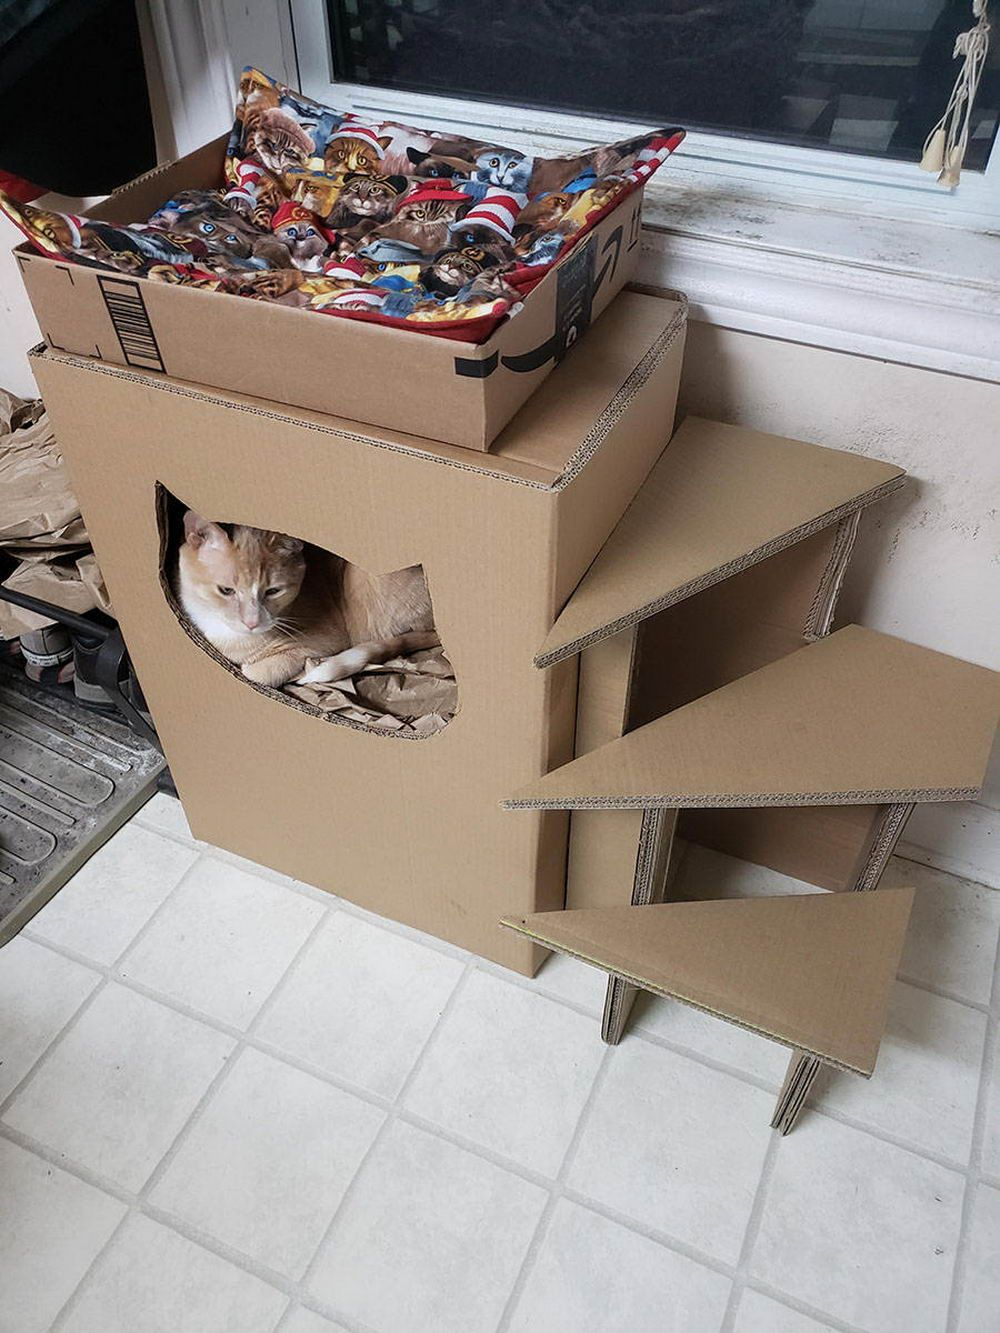 Pin By Marie Jager On Pet In 2020 Cardboard Cat House Cat House Diy Diy Cat Tree